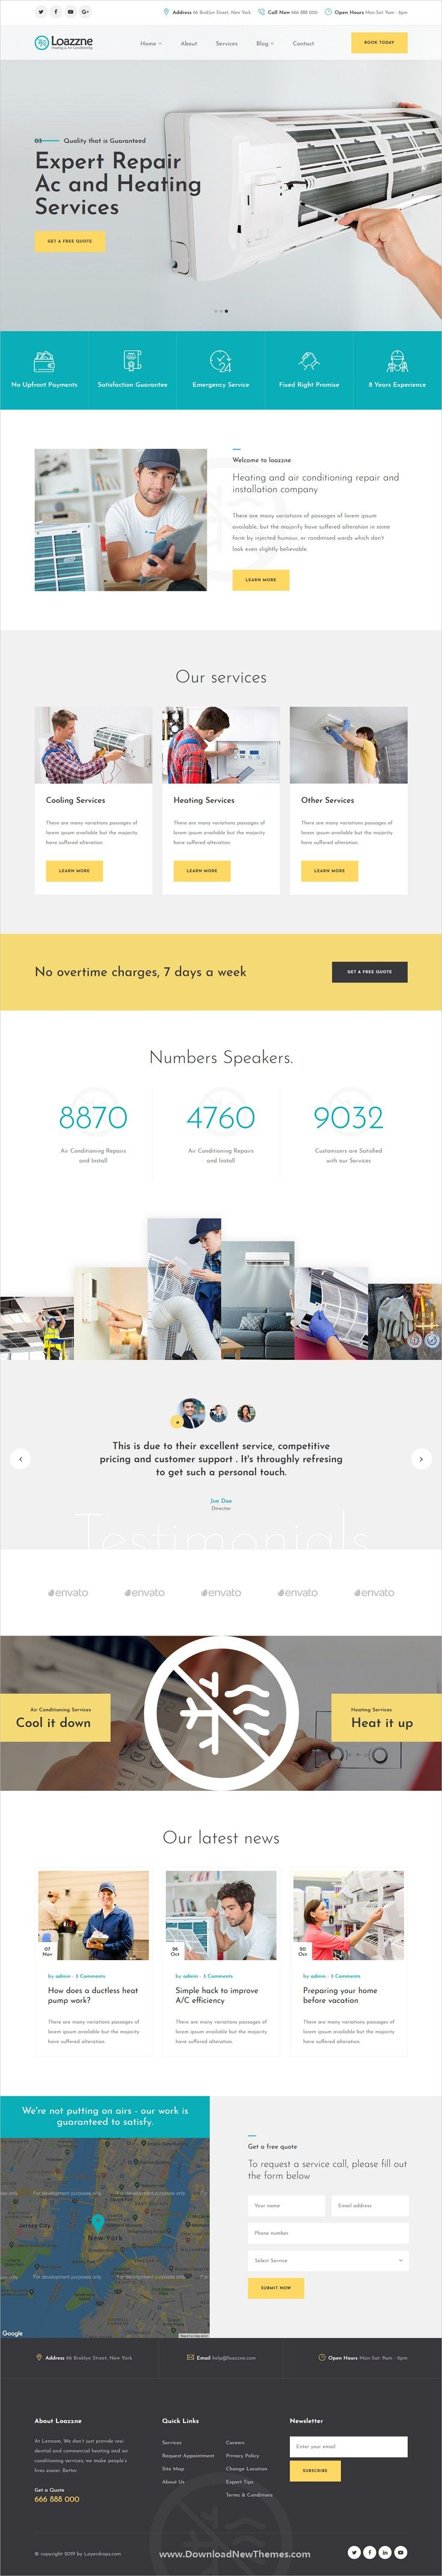 Loazzne Is A Clean And Modern Design 2in1 Responsive Bootstrap Html Template For Ele With Images Air Conditioning Services Heating And Air Conditioning Heating Services